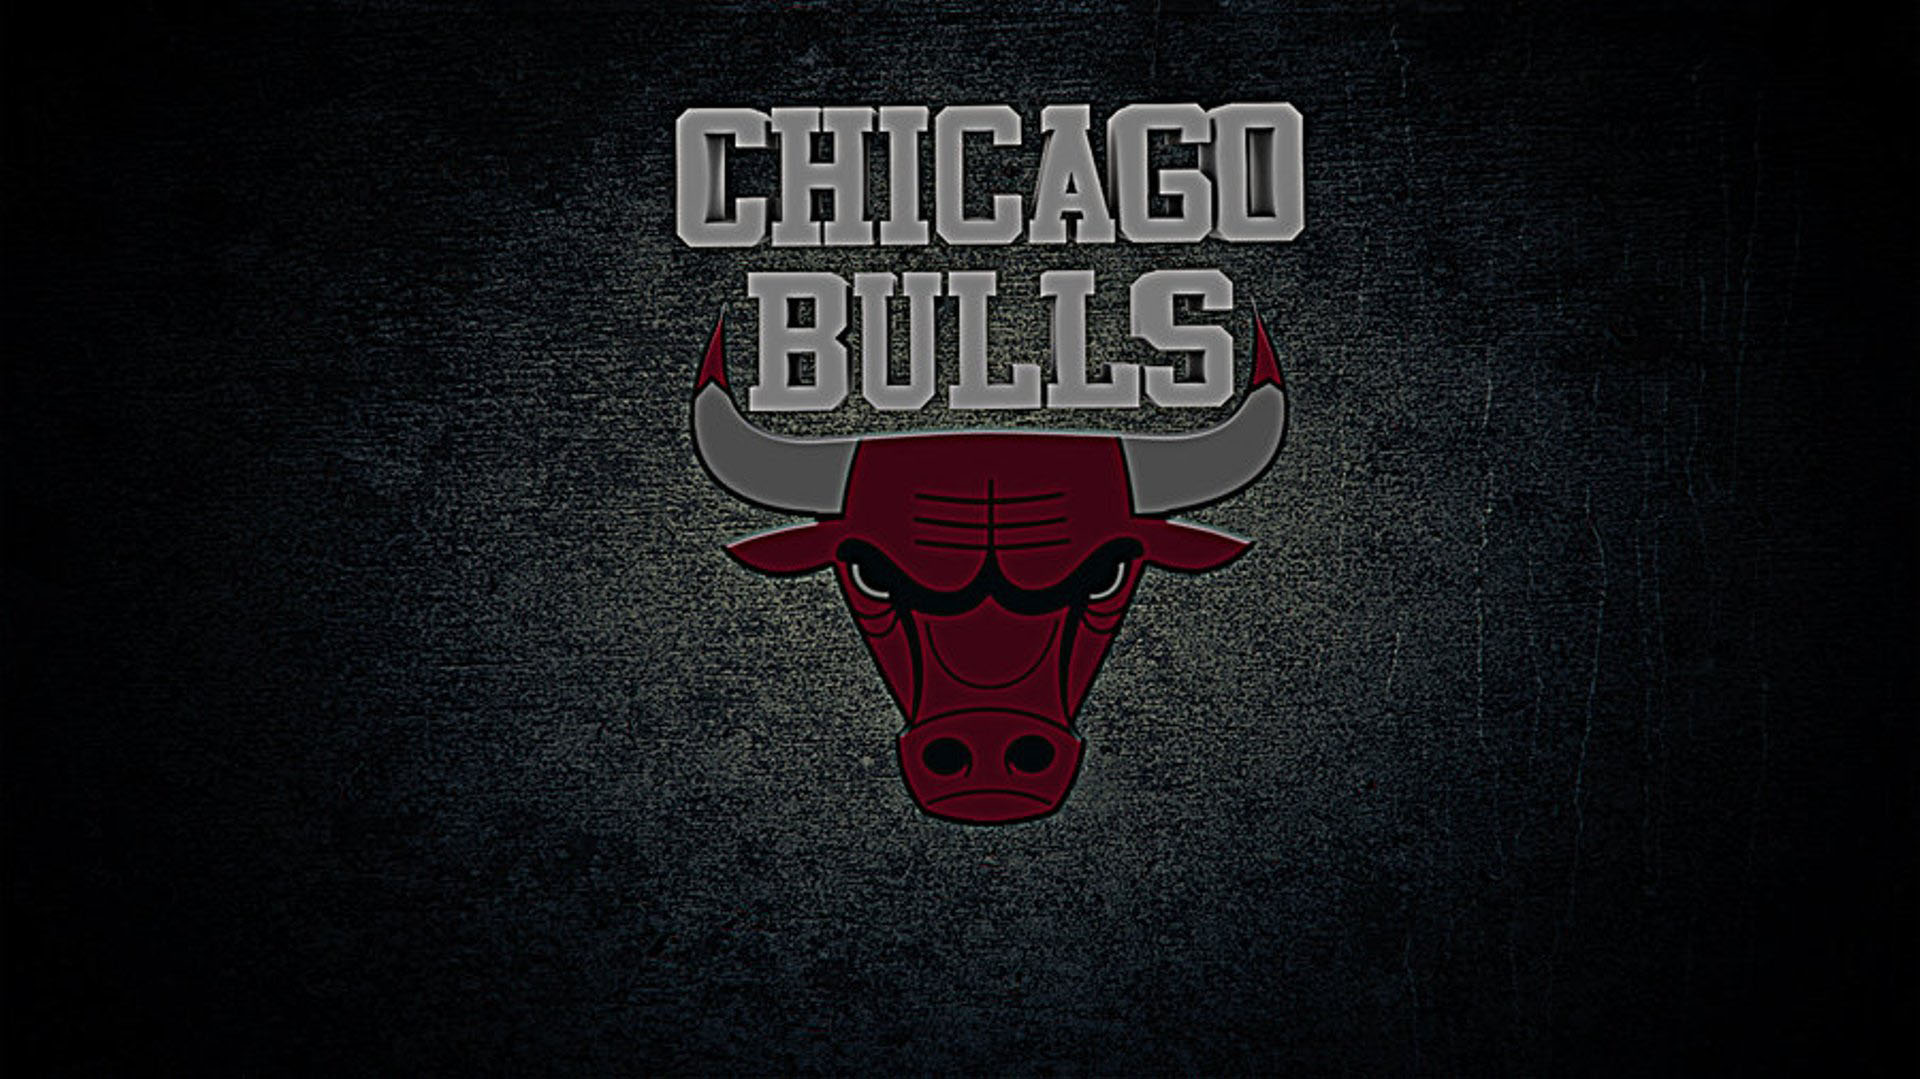 Free Download Chicago Bulls Hd Wallpapers Poster 1920x1079